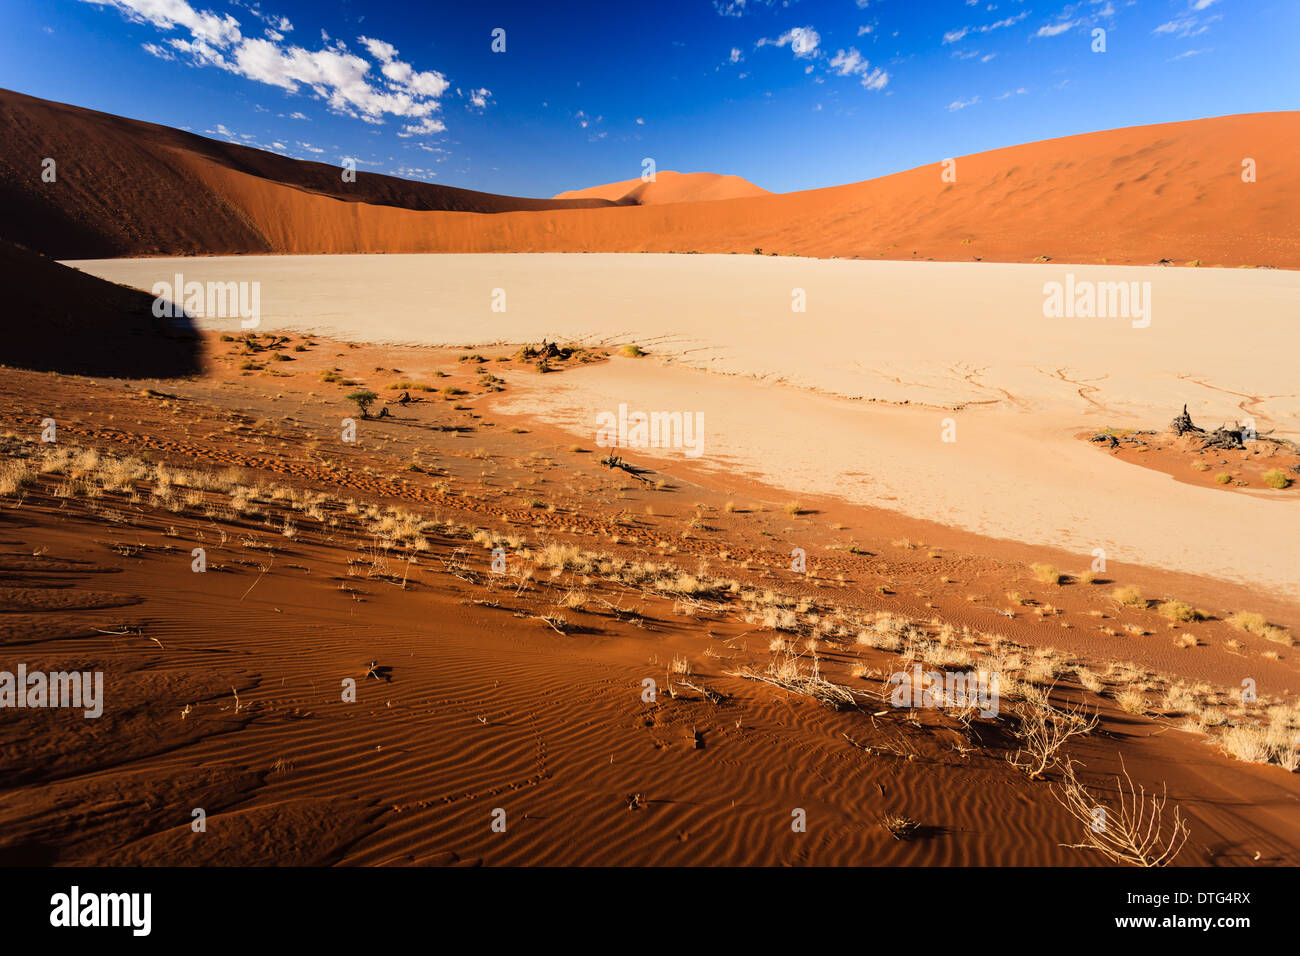 Dry Salt Lake Bed High Resolution Stock Photography And Images Alamy